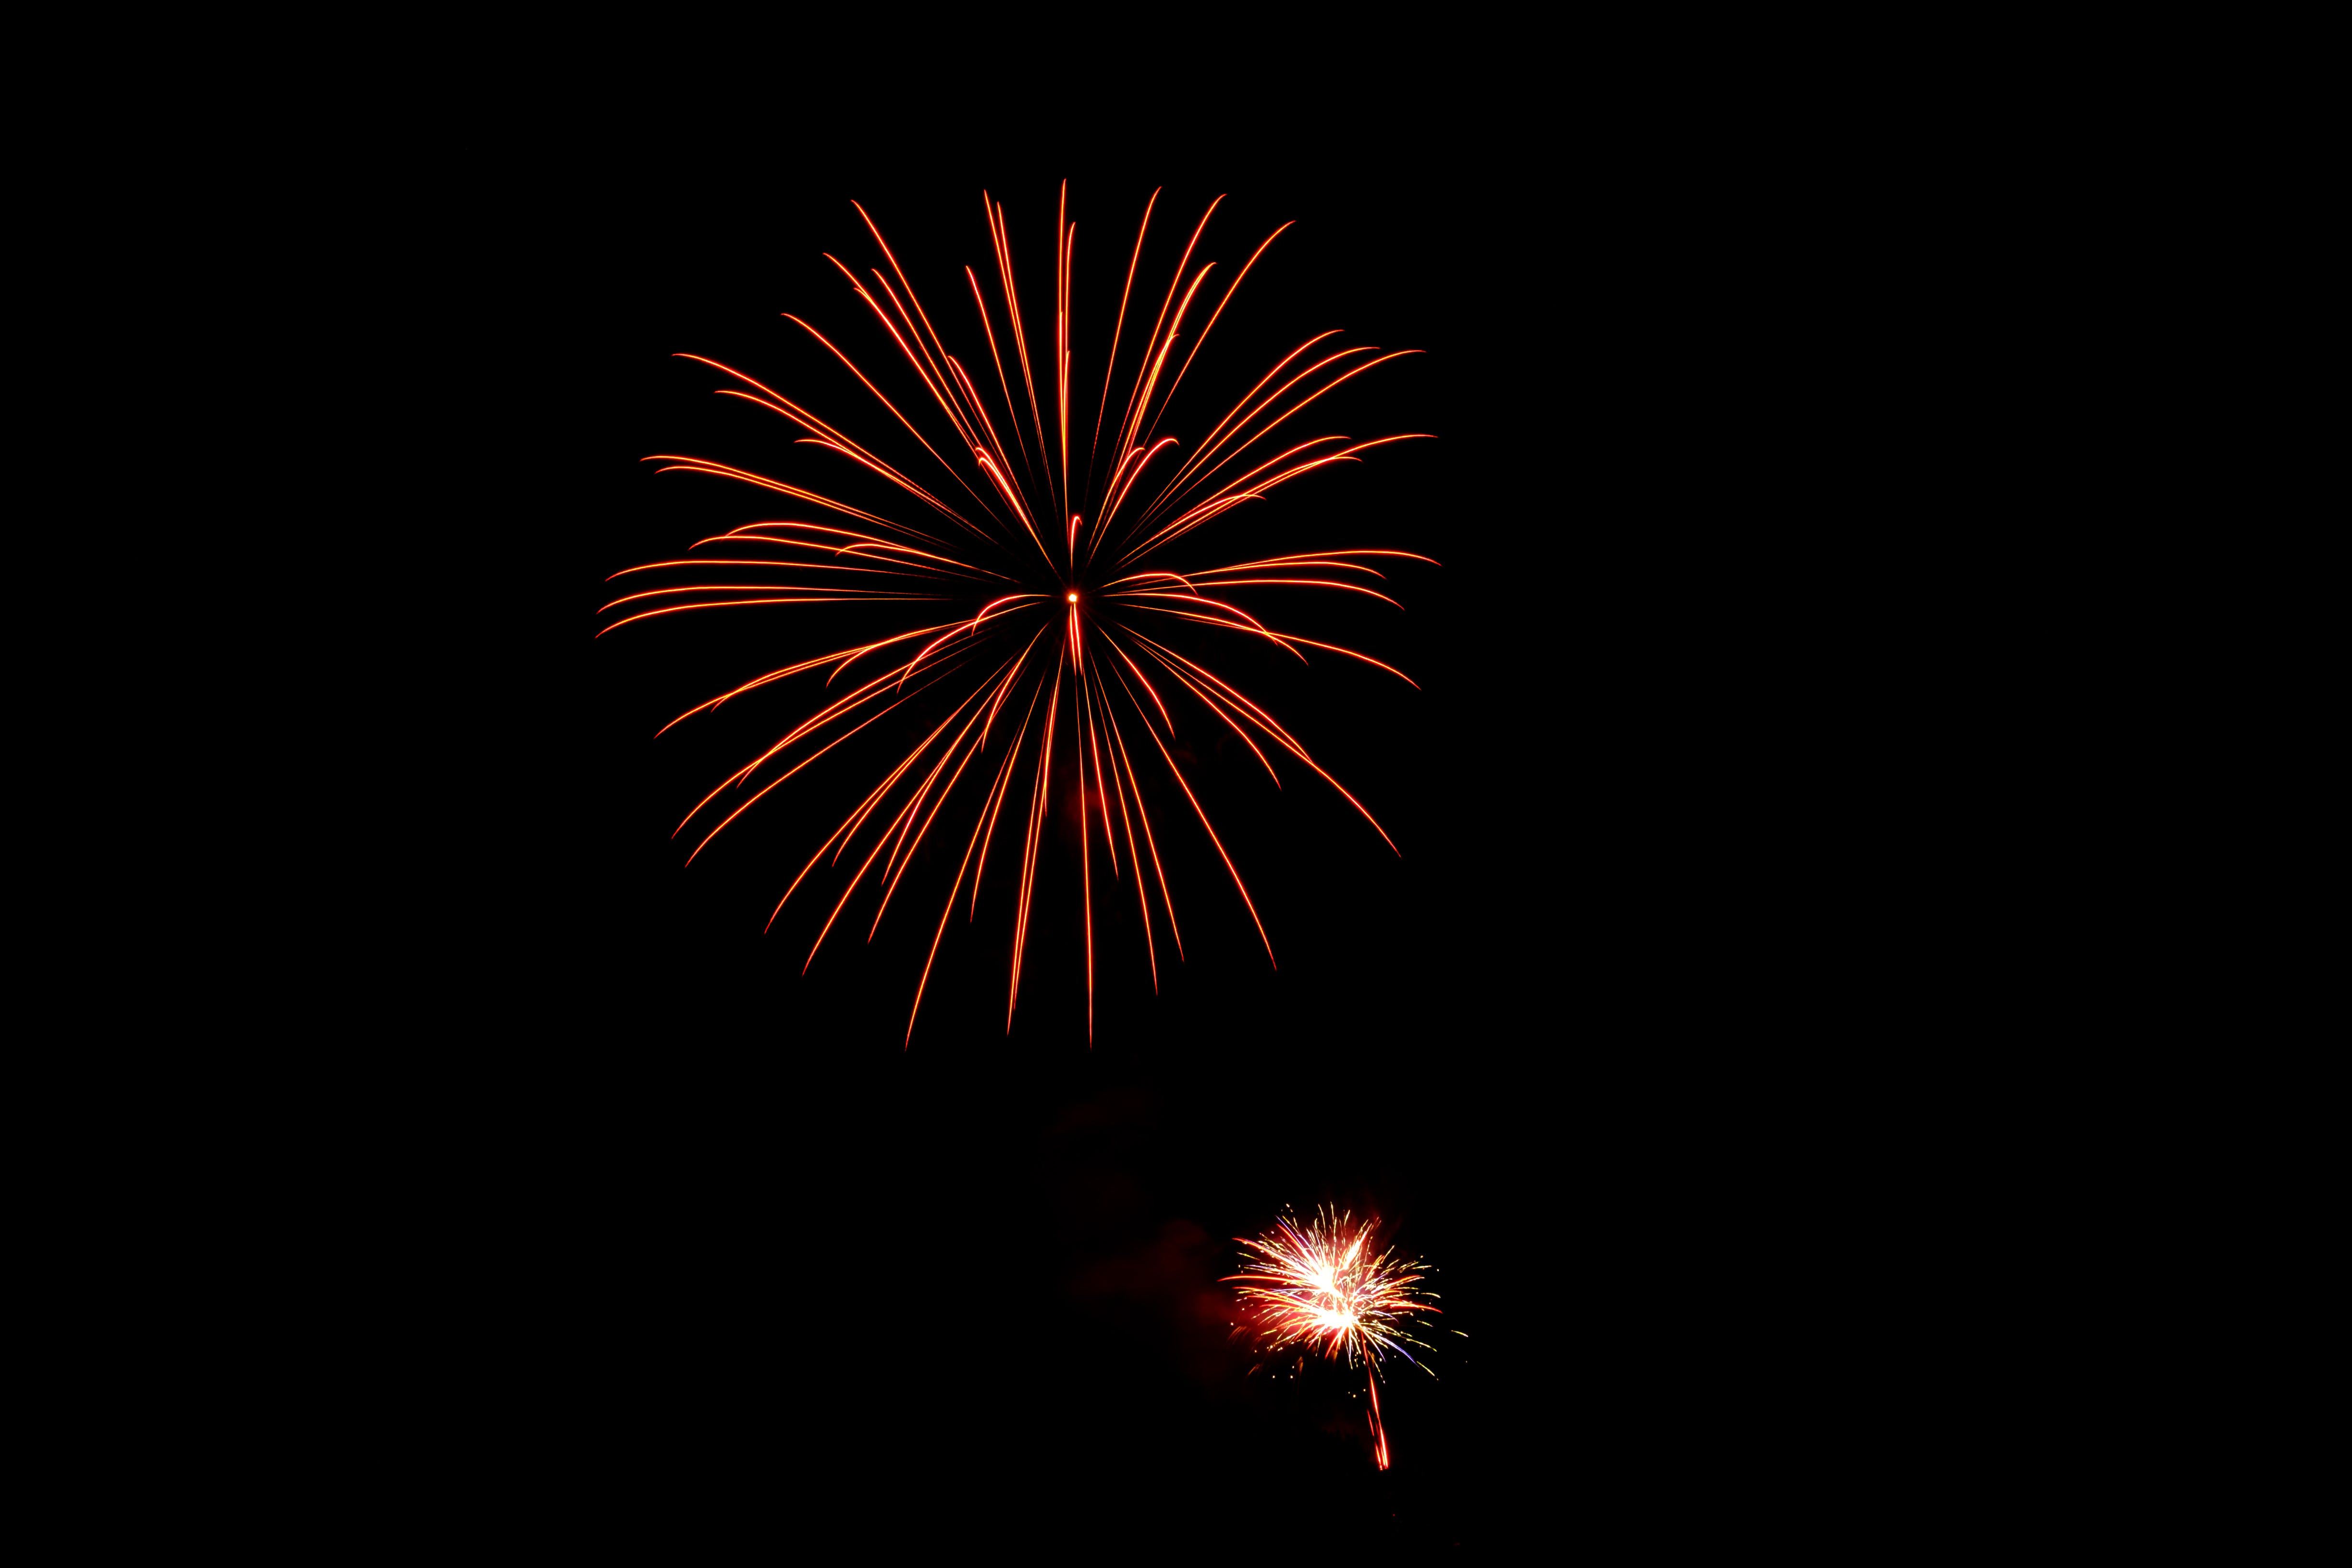 Two Fireworks